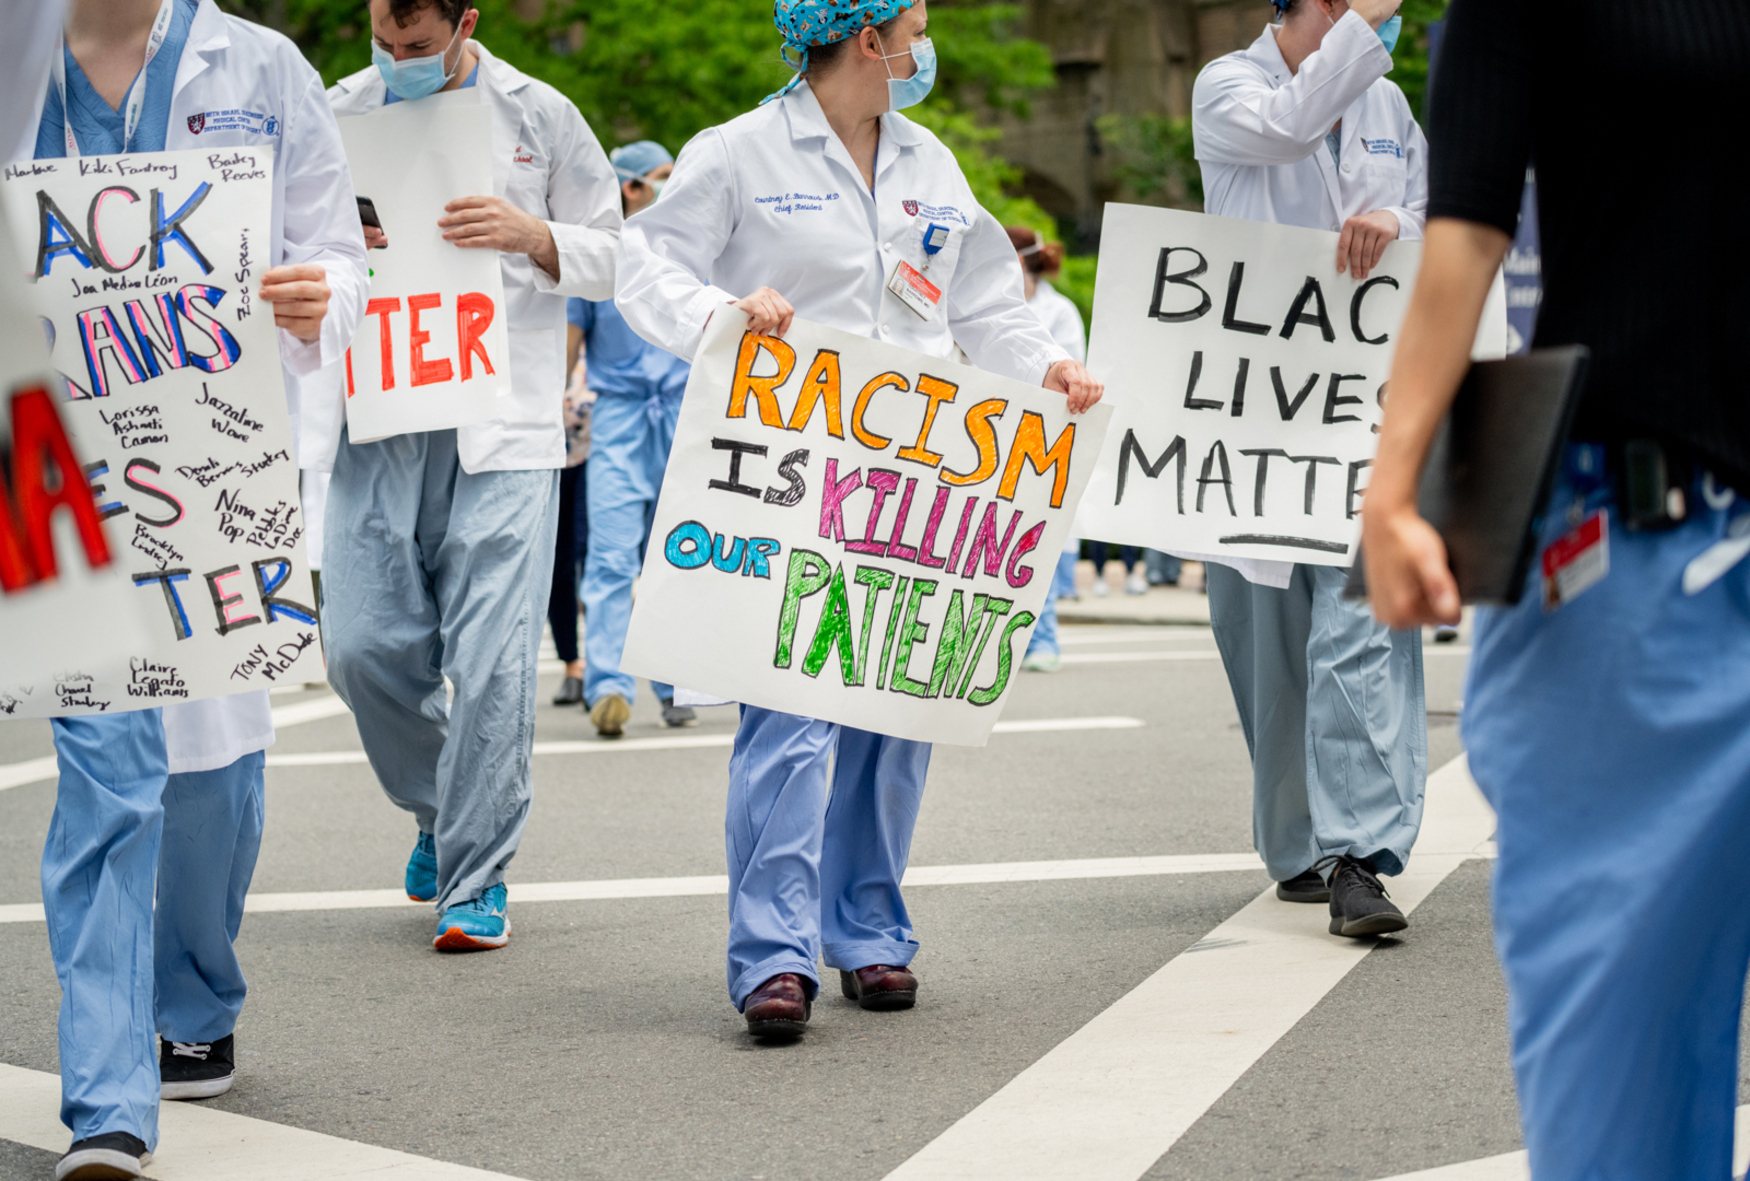 white coats 4 black lives protest